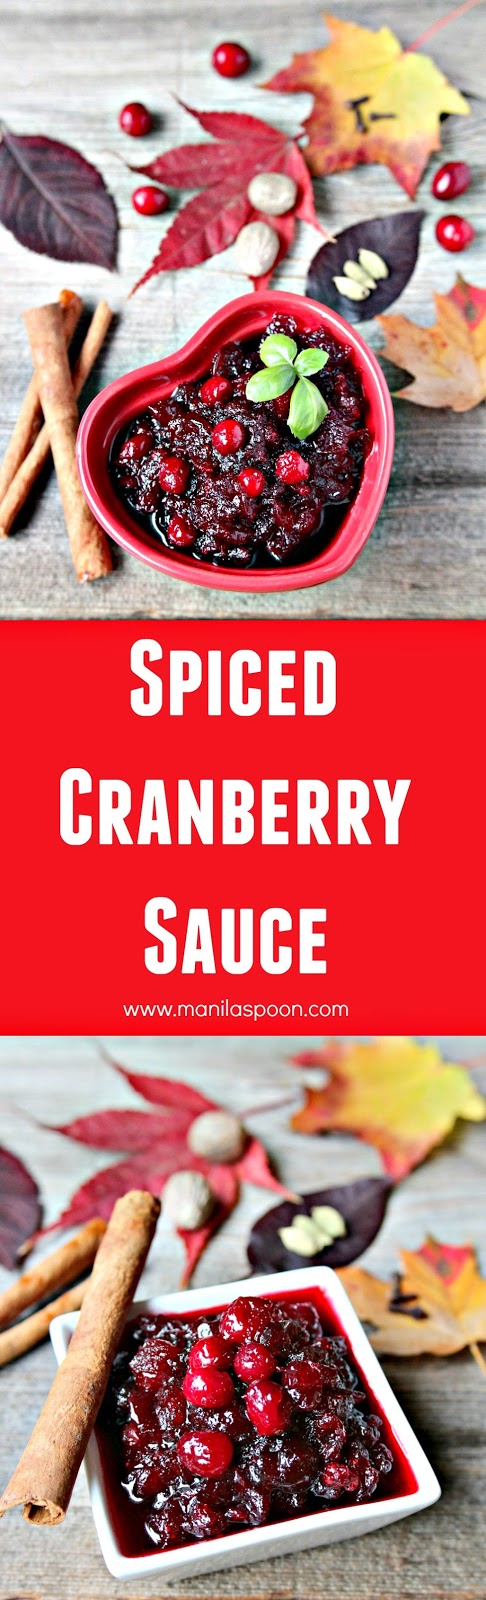 Flavored with nutmeg, cardamom, cloves and cinnamon this Spiced Cranberry Sauce will blow your taste buds away. It's seriously delicious and the perfect condiment for Thanksgiving, Christmas and any holiday! | manilaspoon.com